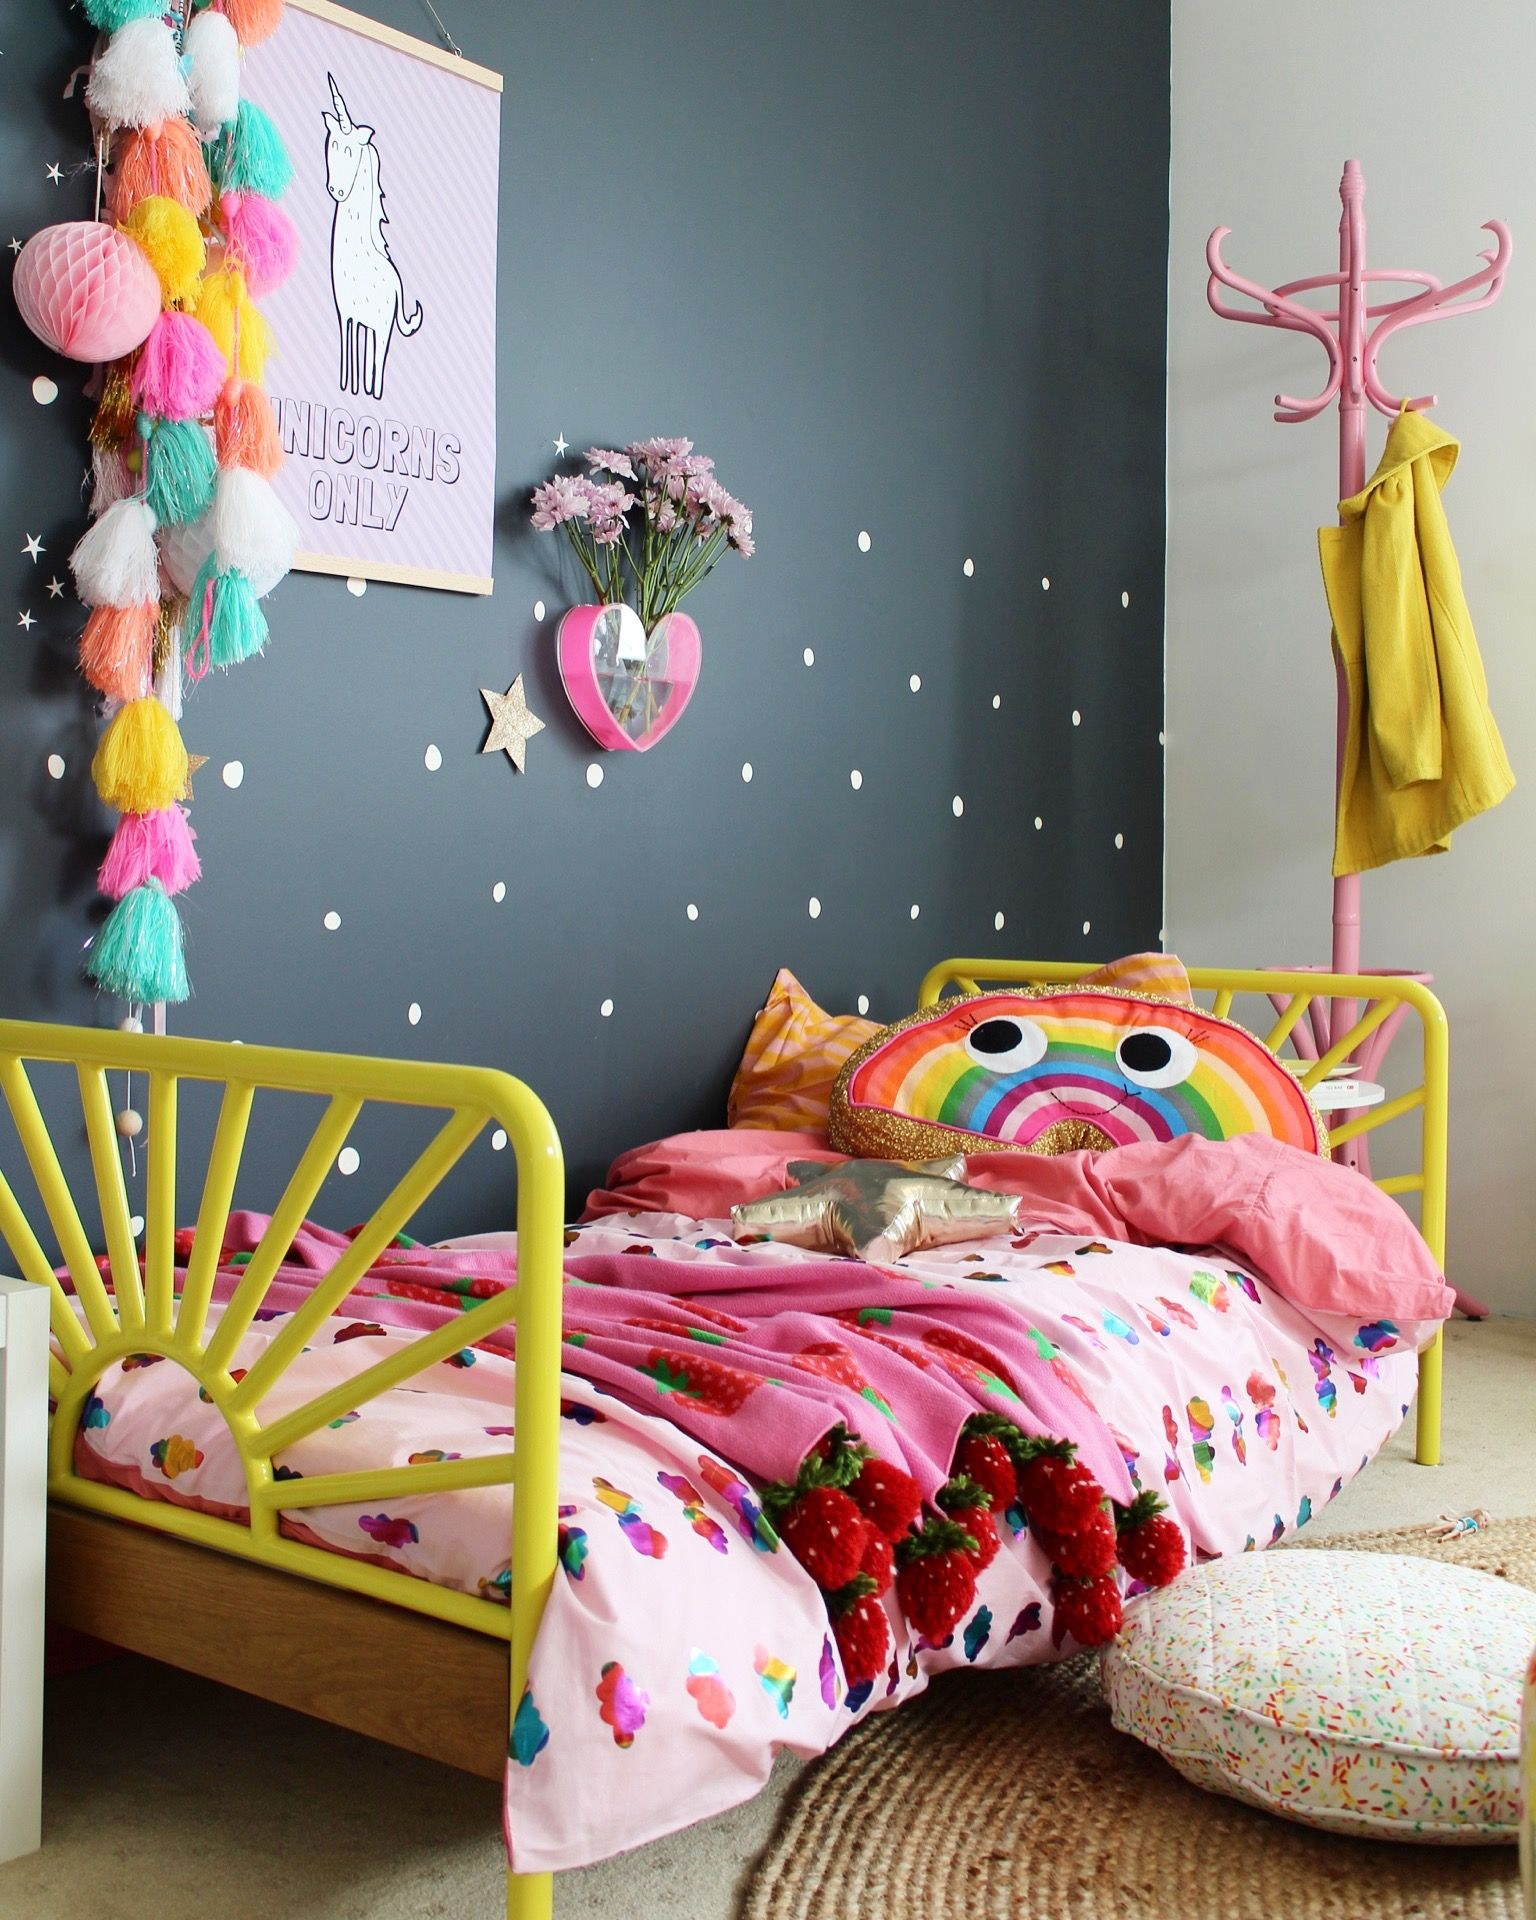 25+ Amazing Girls Room Decor Ideas For Teenagers